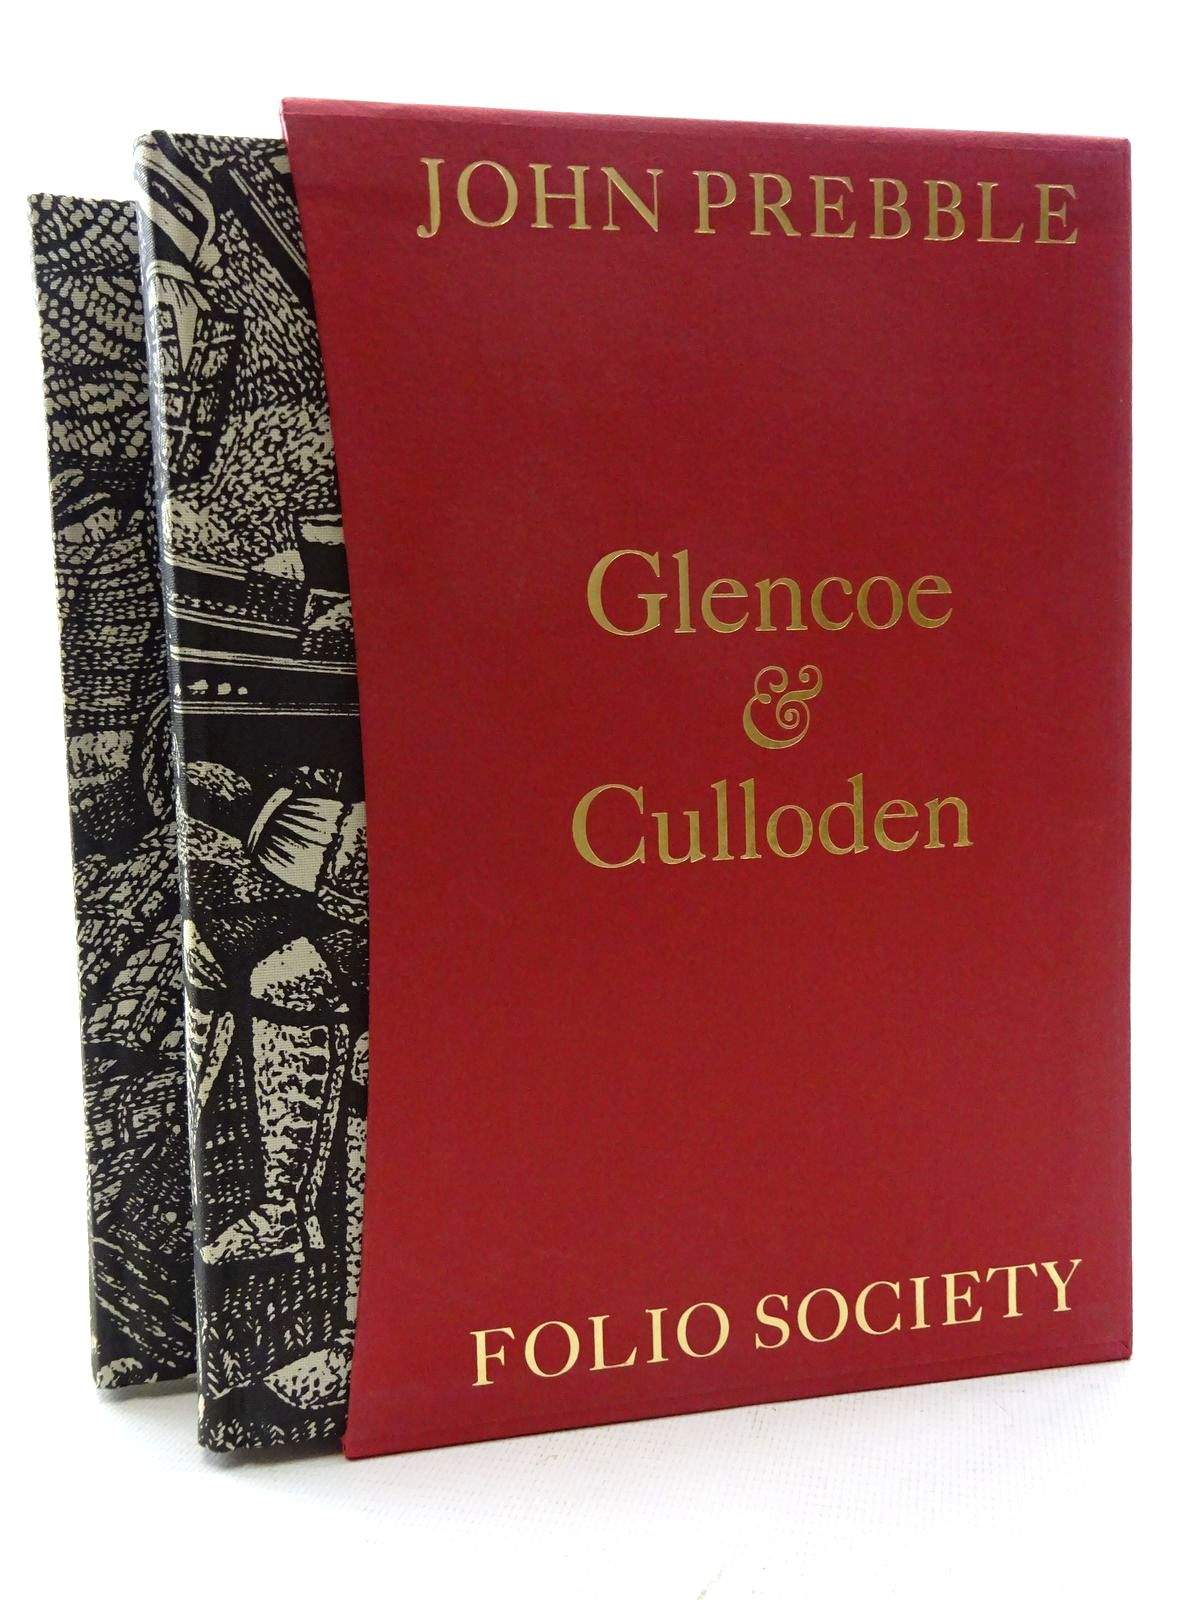 Photo of GLENCOE; CULLODEN written by Prebble, John illustrated by Brockway, Harry published by Folio Society (STOCK CODE: 2126038)  for sale by Stella & Rose's Books